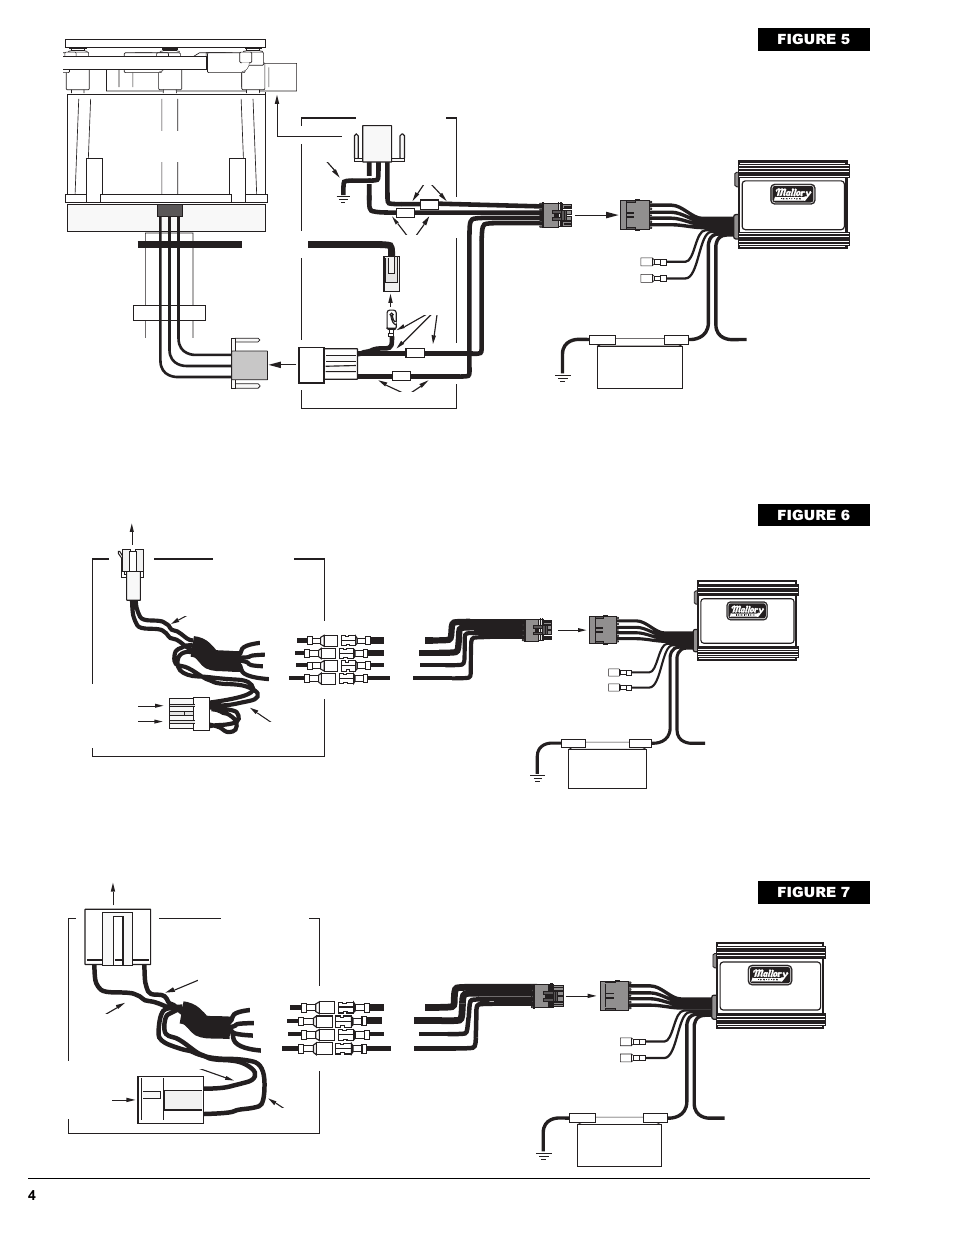 hight resolution of mallory hyfire ignition wiring diagram wiring librarymallory hyfire wiring diagram for cj7 wiring diagrams mallory coil